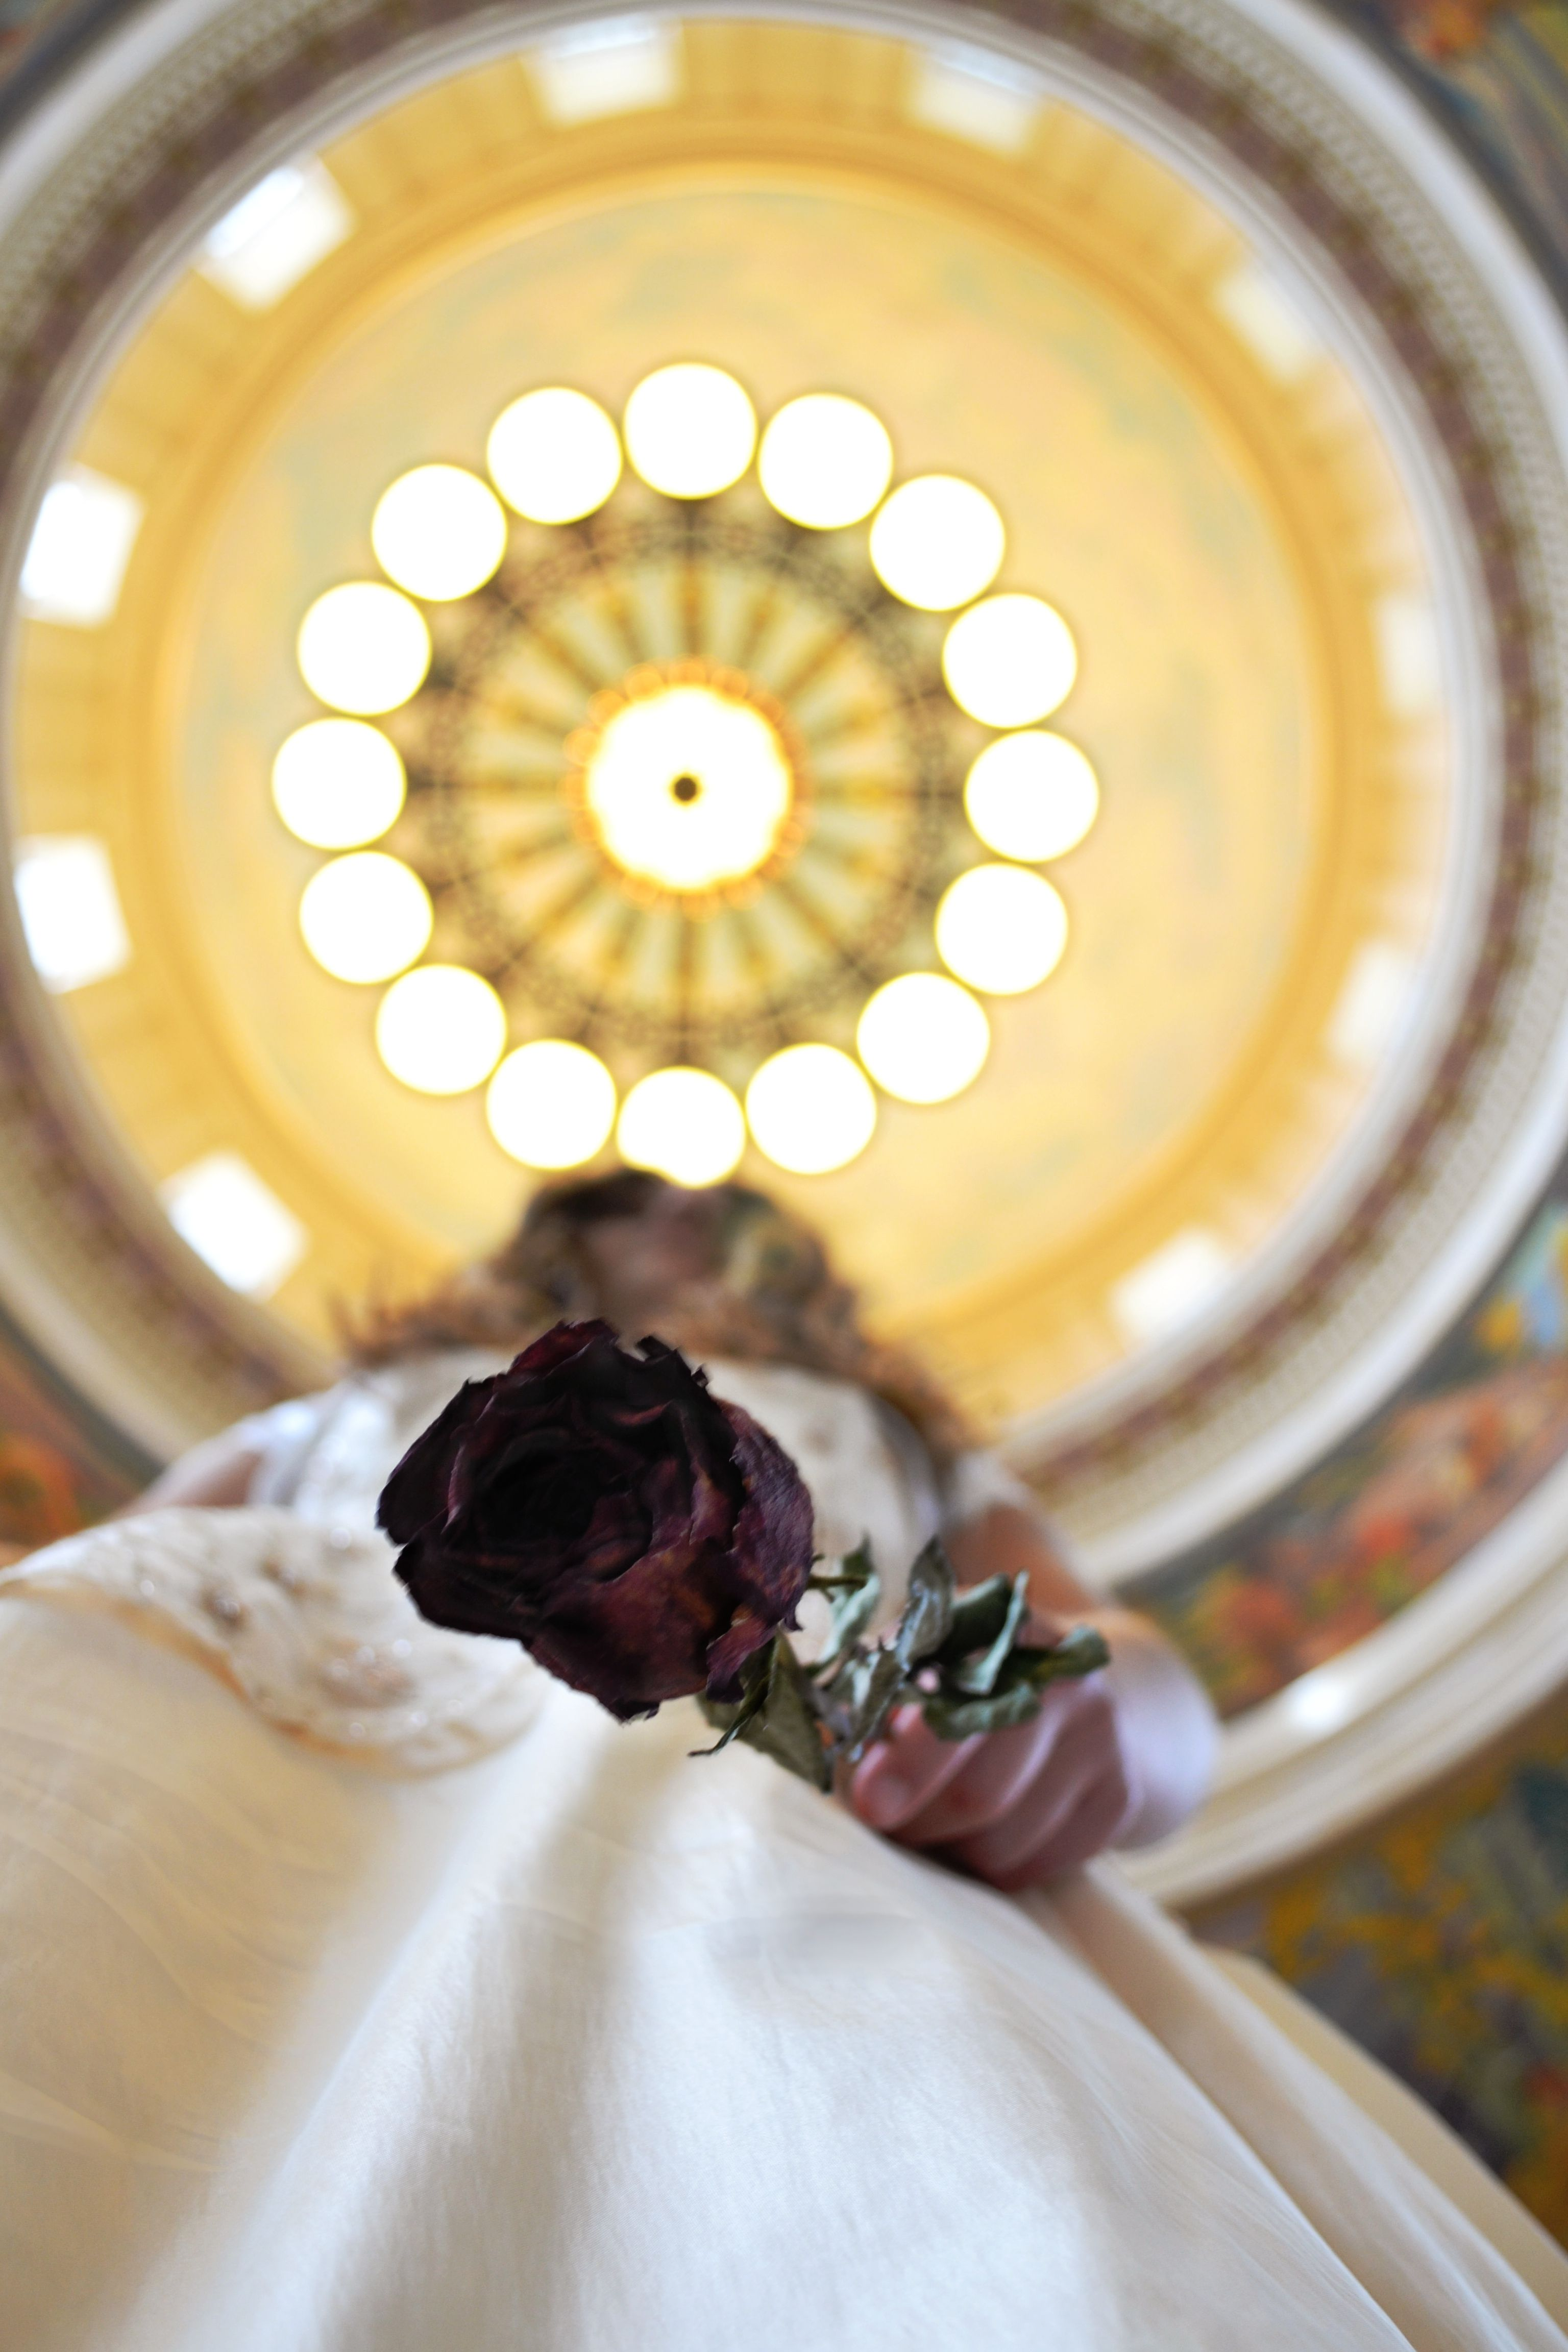 Preview for the Beauty and the Beast inspiration Photo Shoot! #endofmayphoto #beautyandthebeast #utahstatecapitol